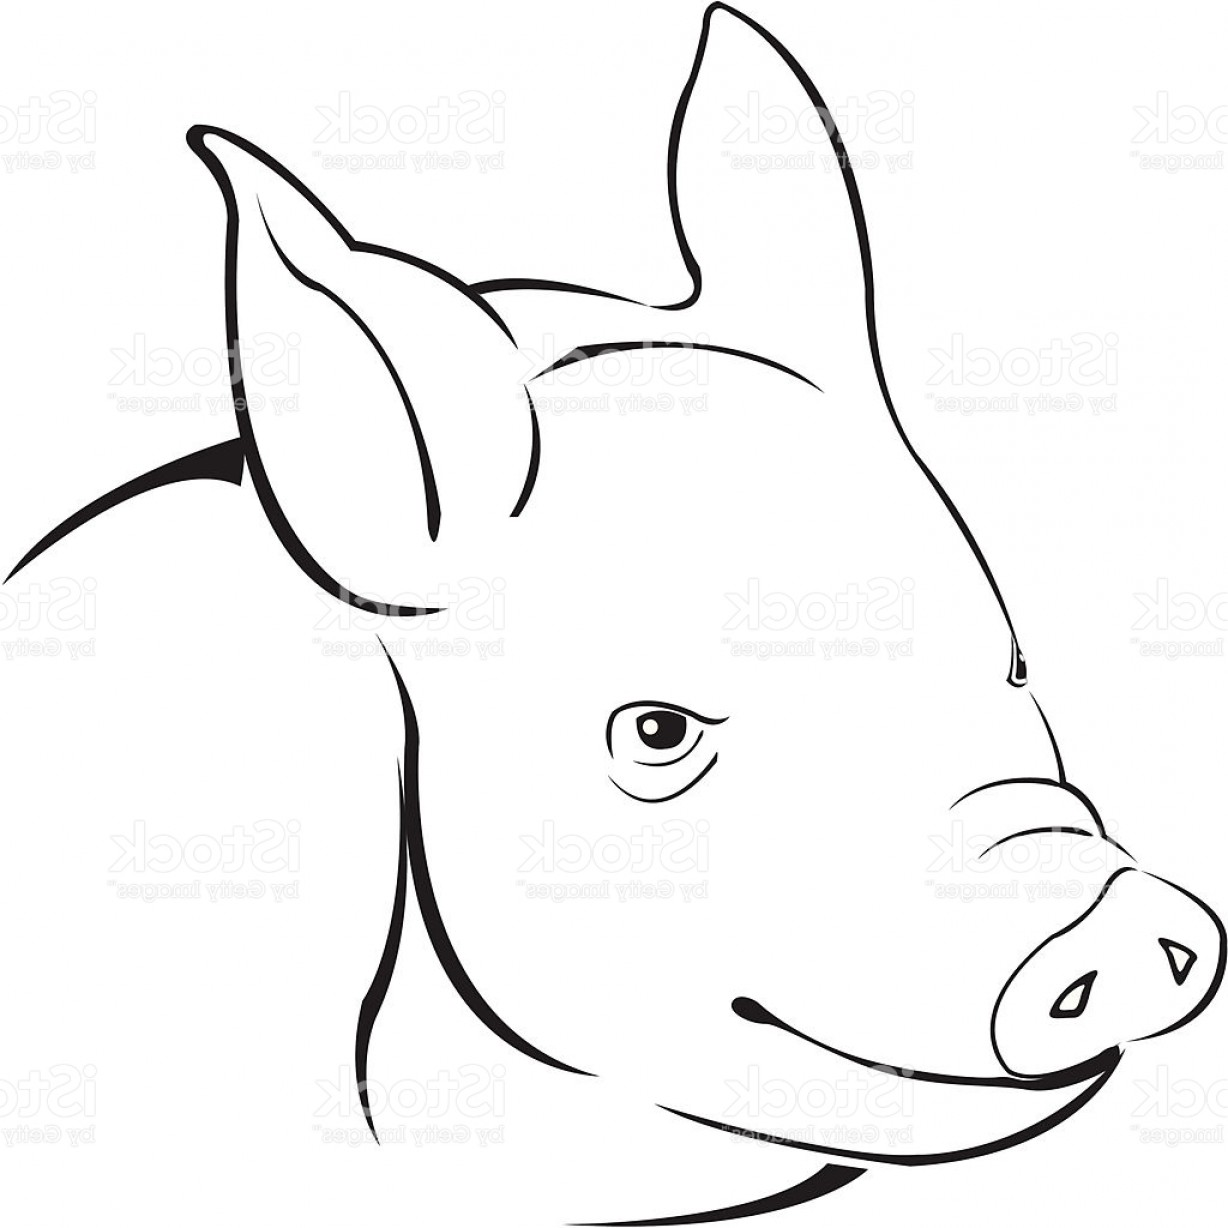 1228x1228 Suddenly Simple Pig Drawing Stock Vector Art More Images Of Animal